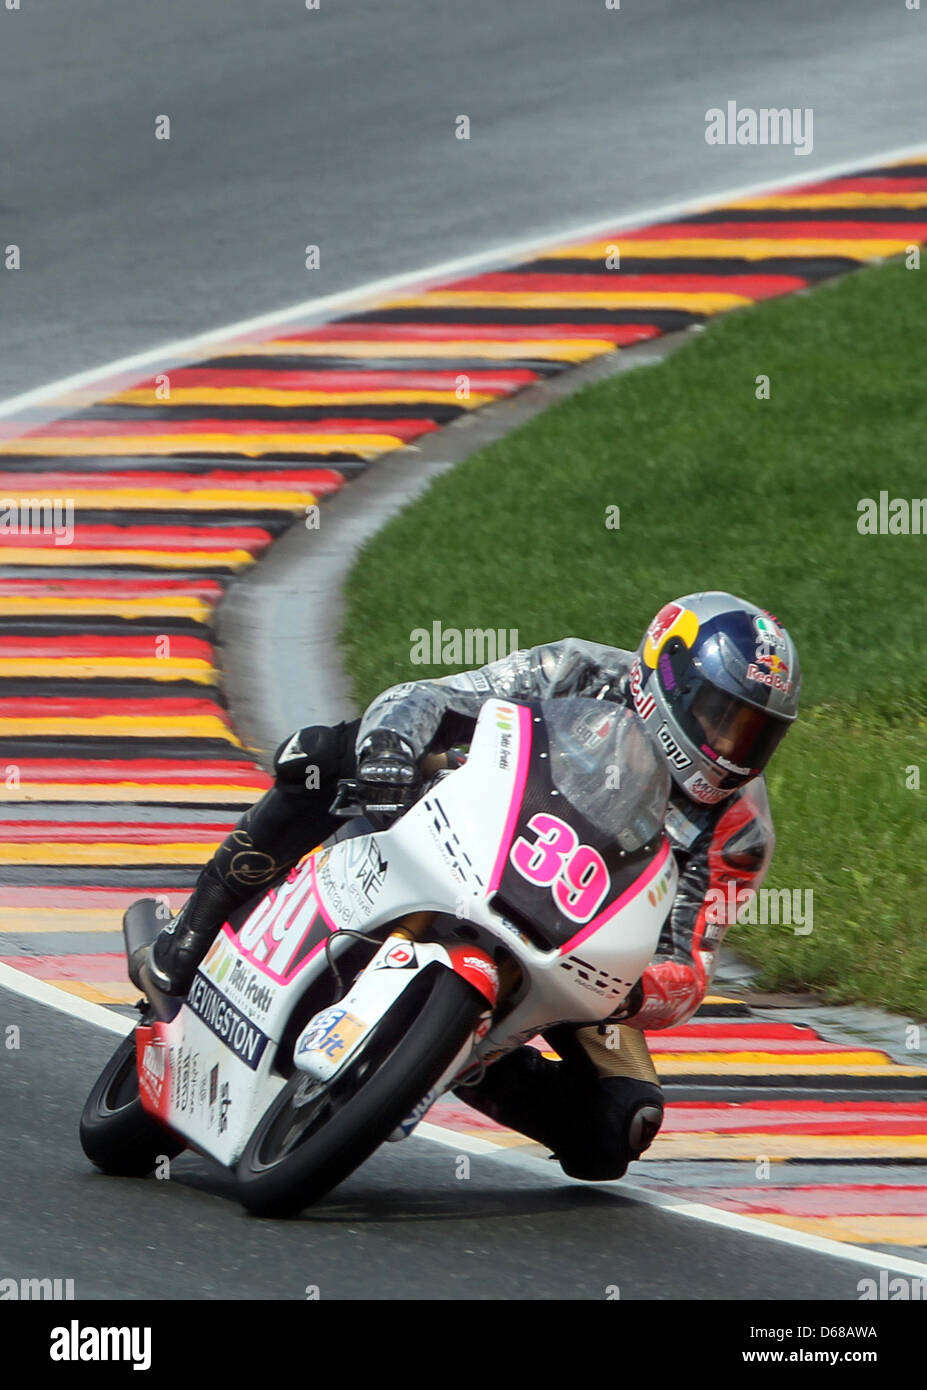 Spanish Luis Salom of Team RW Racing GP races in the German MotoGP at Sachsenring in Hohenstein-Ernstthal, Germany, Stock Photo